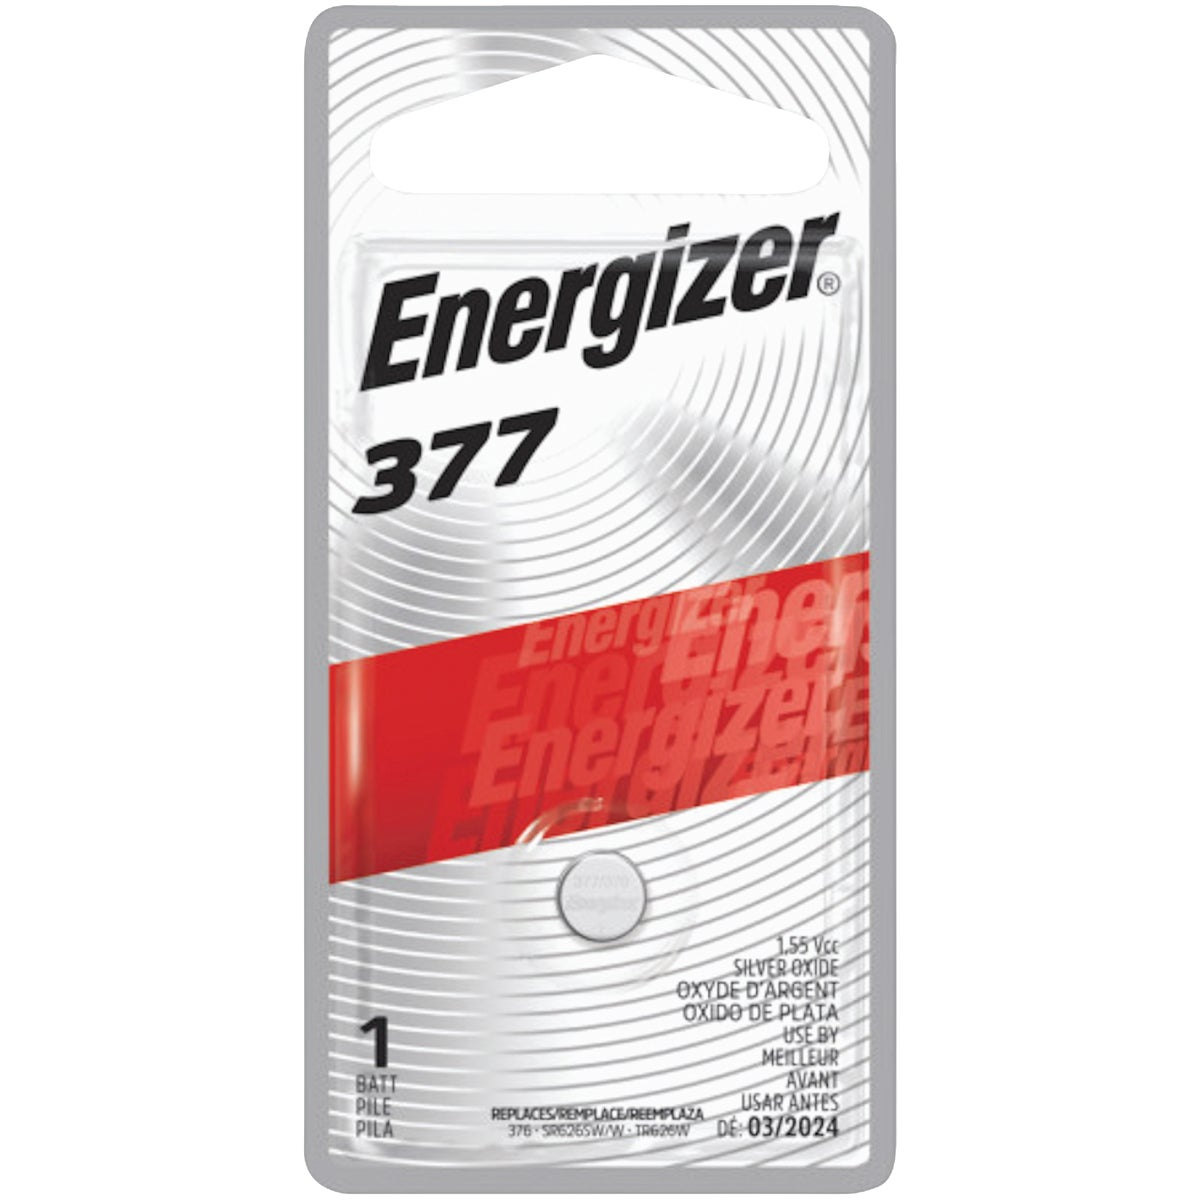 1.5V WATCH BATTERY - 377BPZ by Energizer